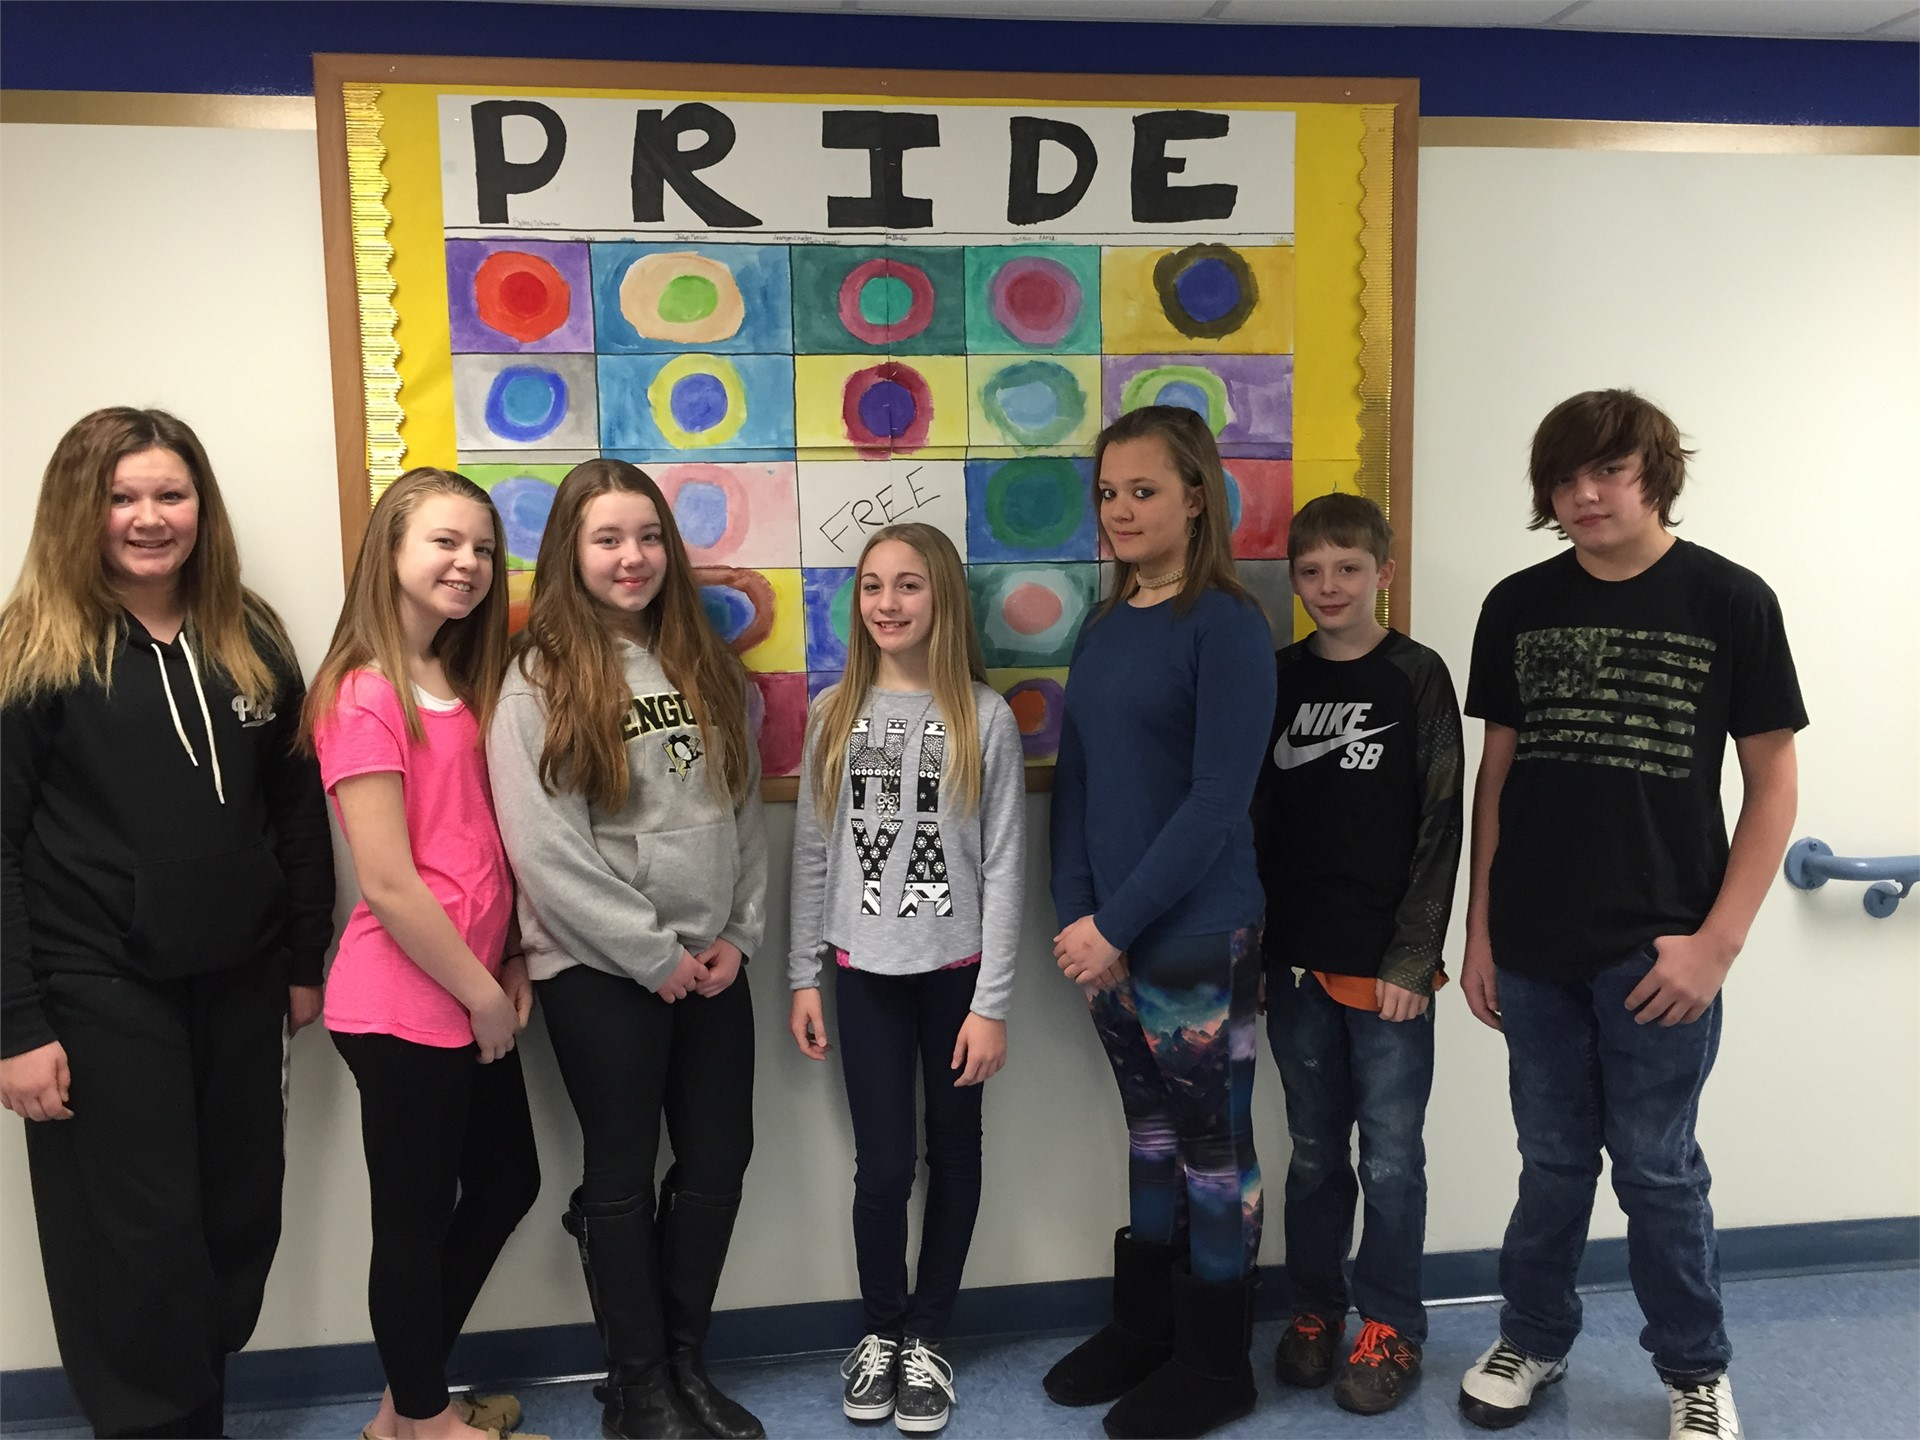 PRIDE Bingo painted by 6th grade art students!